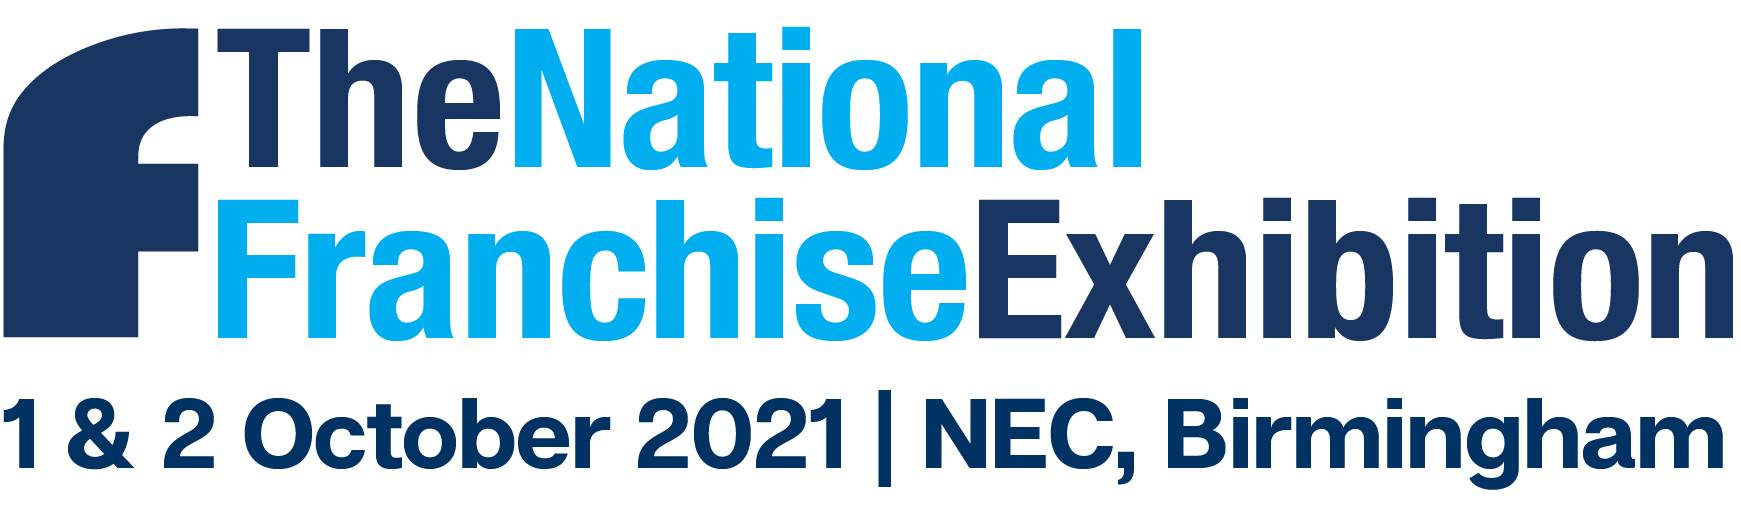 NFAB21 Franchise Shows in the UK